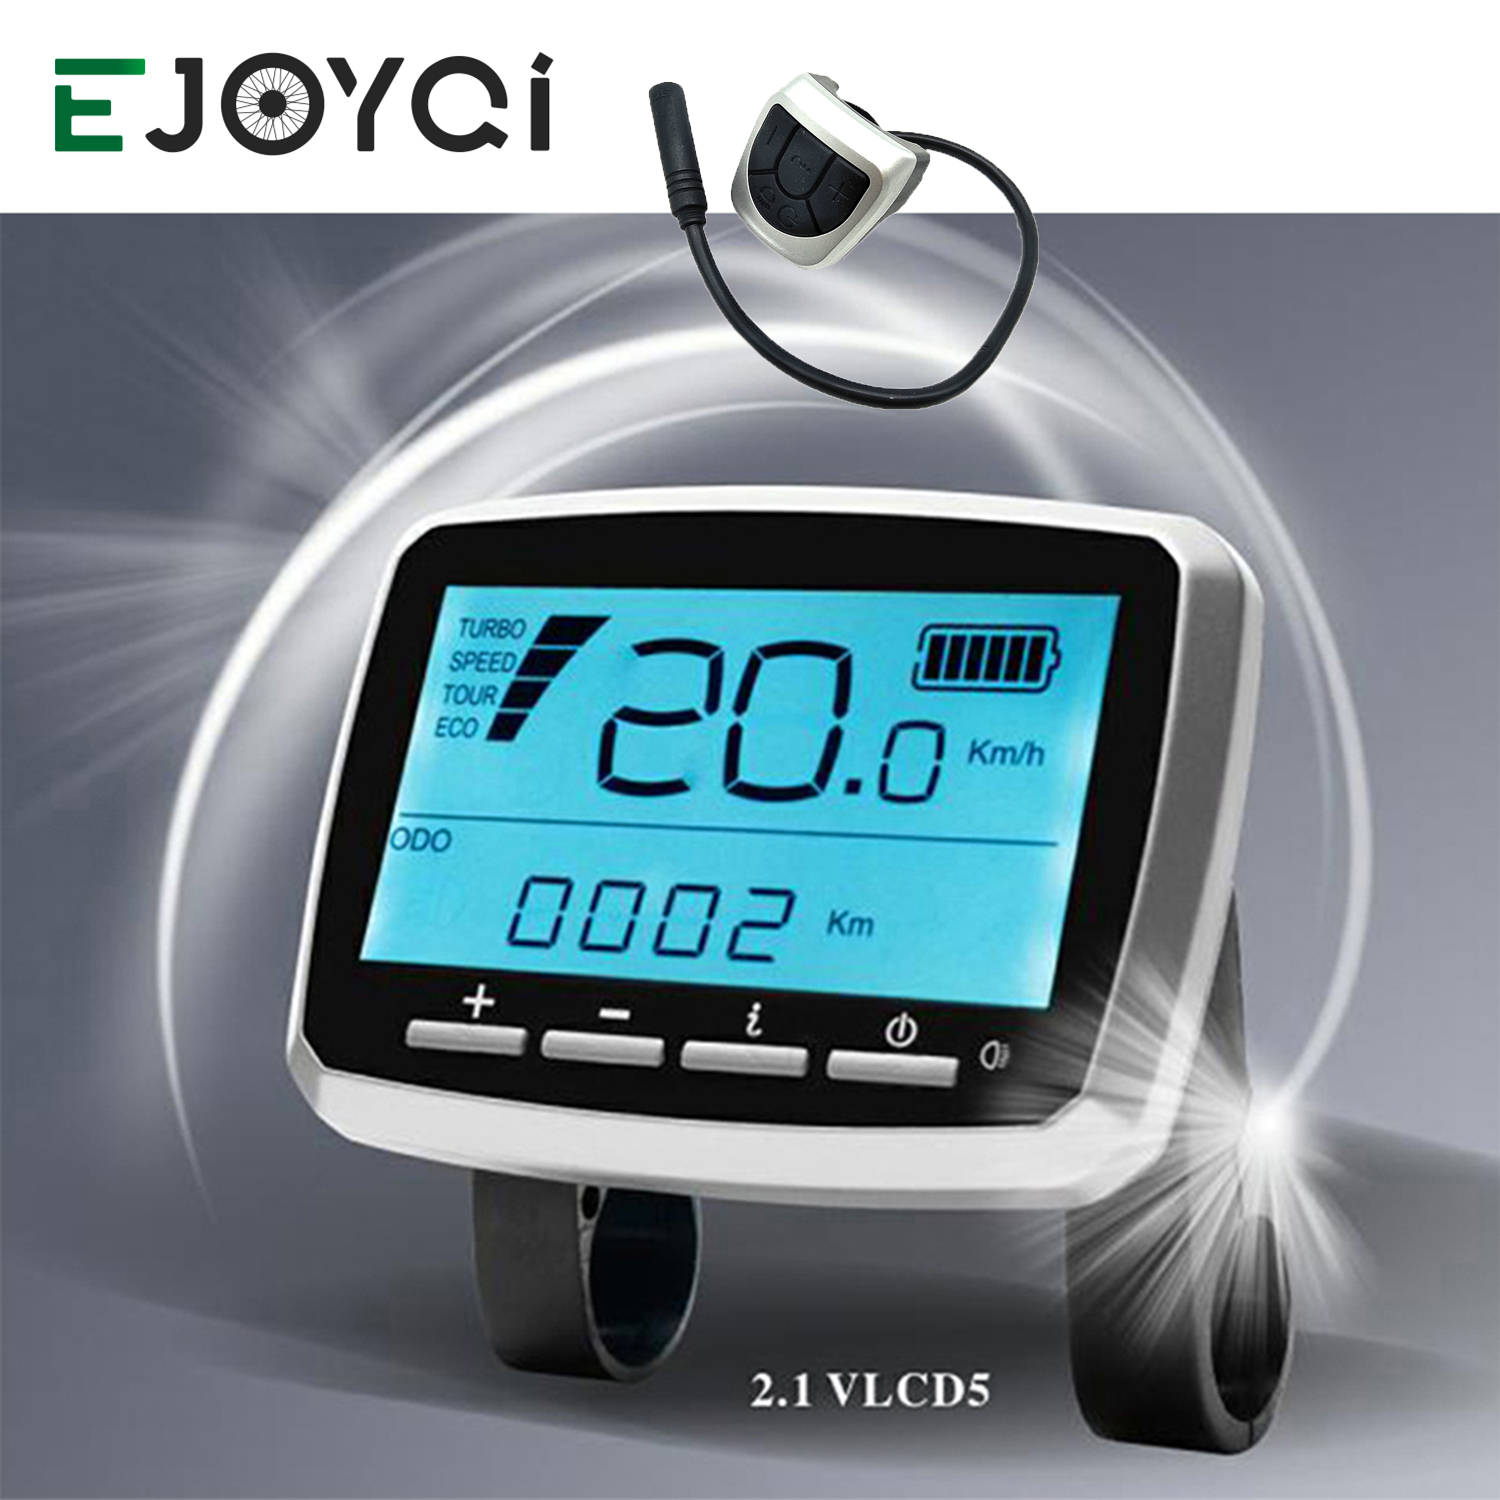 TongSheng VLCD5 Display Operator Ebike LCD Display Electric Bicycle Ebike Accessories VLCD 5 Display For TSDZ 2 Mid Motor